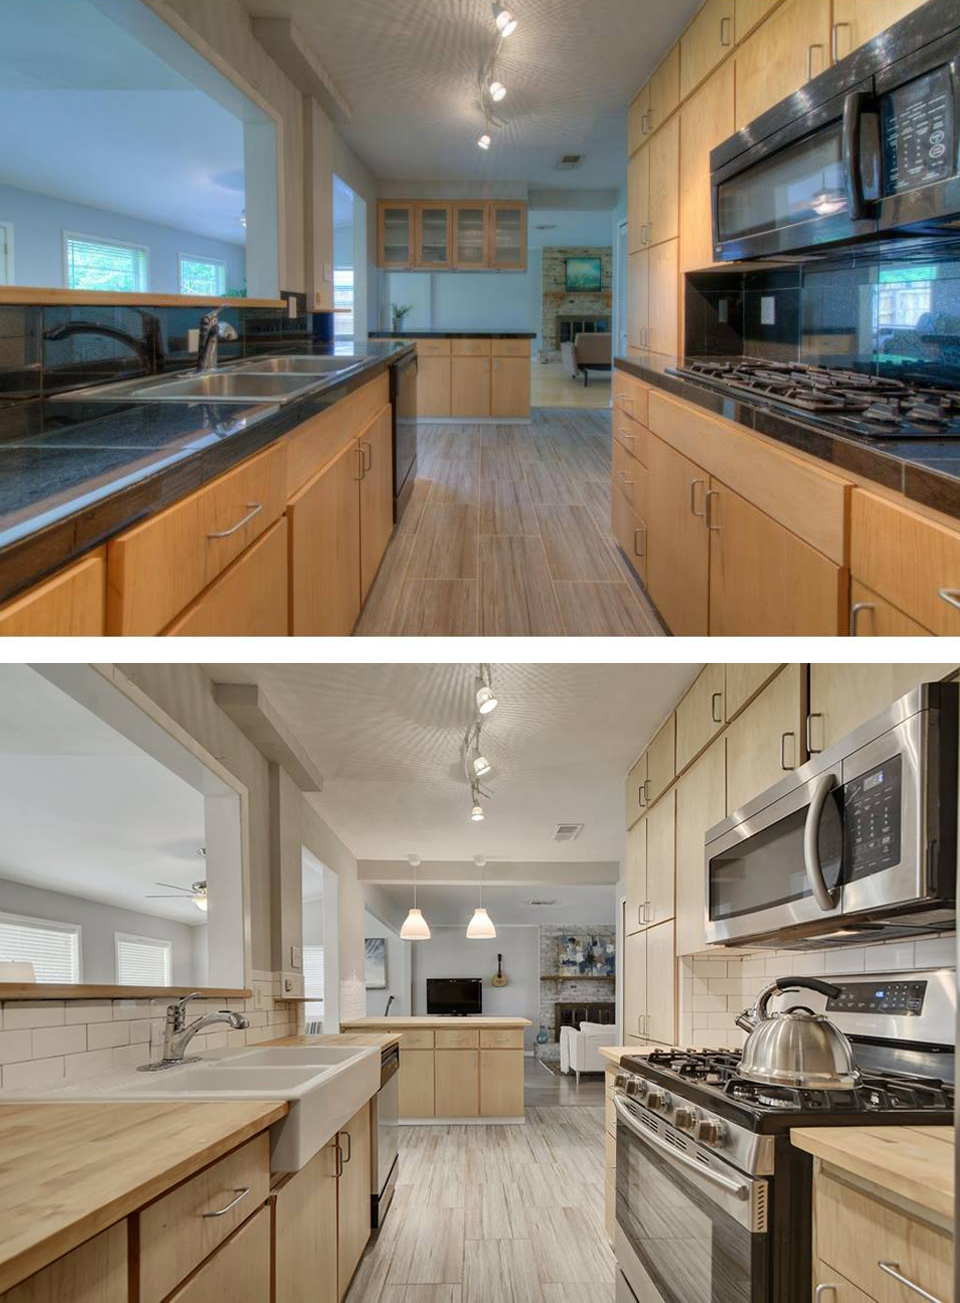 Before & After of Kitchen